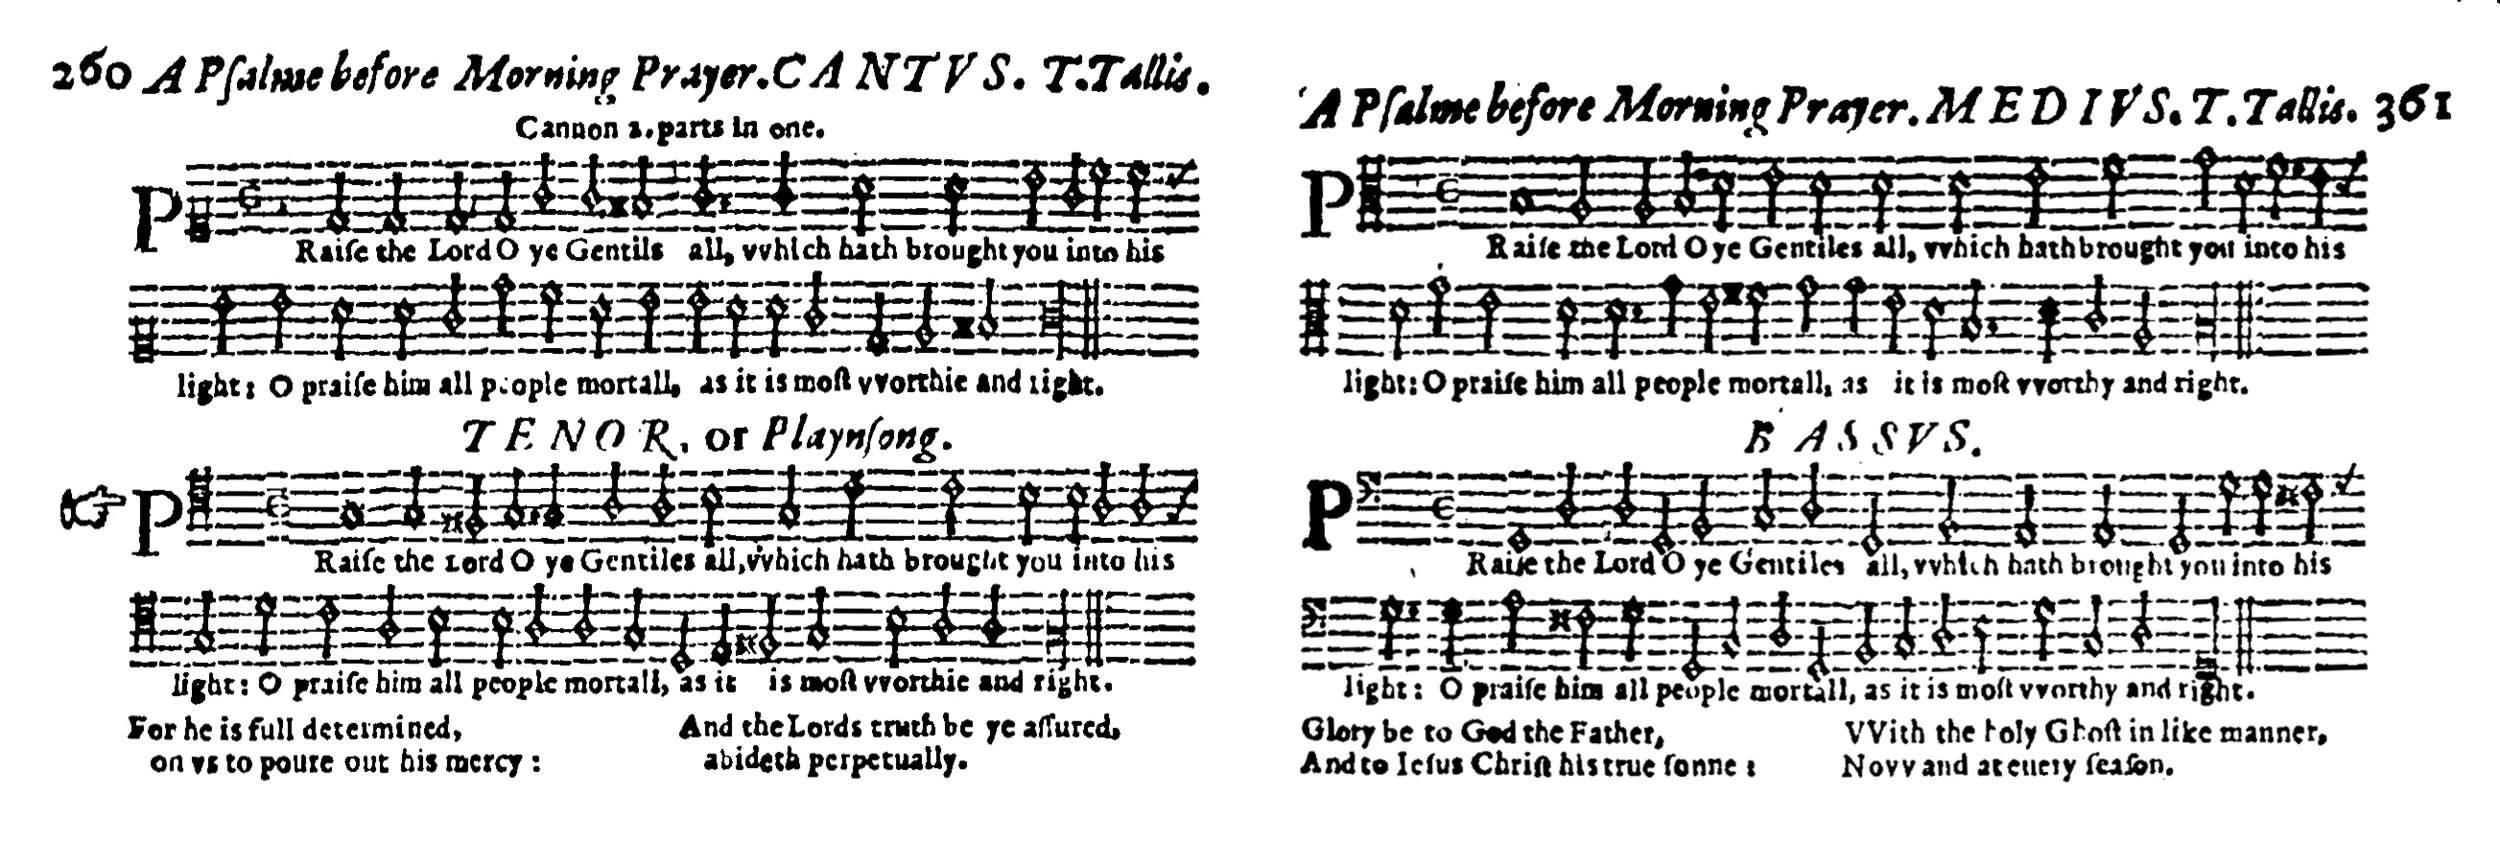 Fig. 9.  Thomas Ravenscroft,  Whole Booke of Psalmes  (London, 1621). Melody in the tenor part, helpfully indicated by the hand.